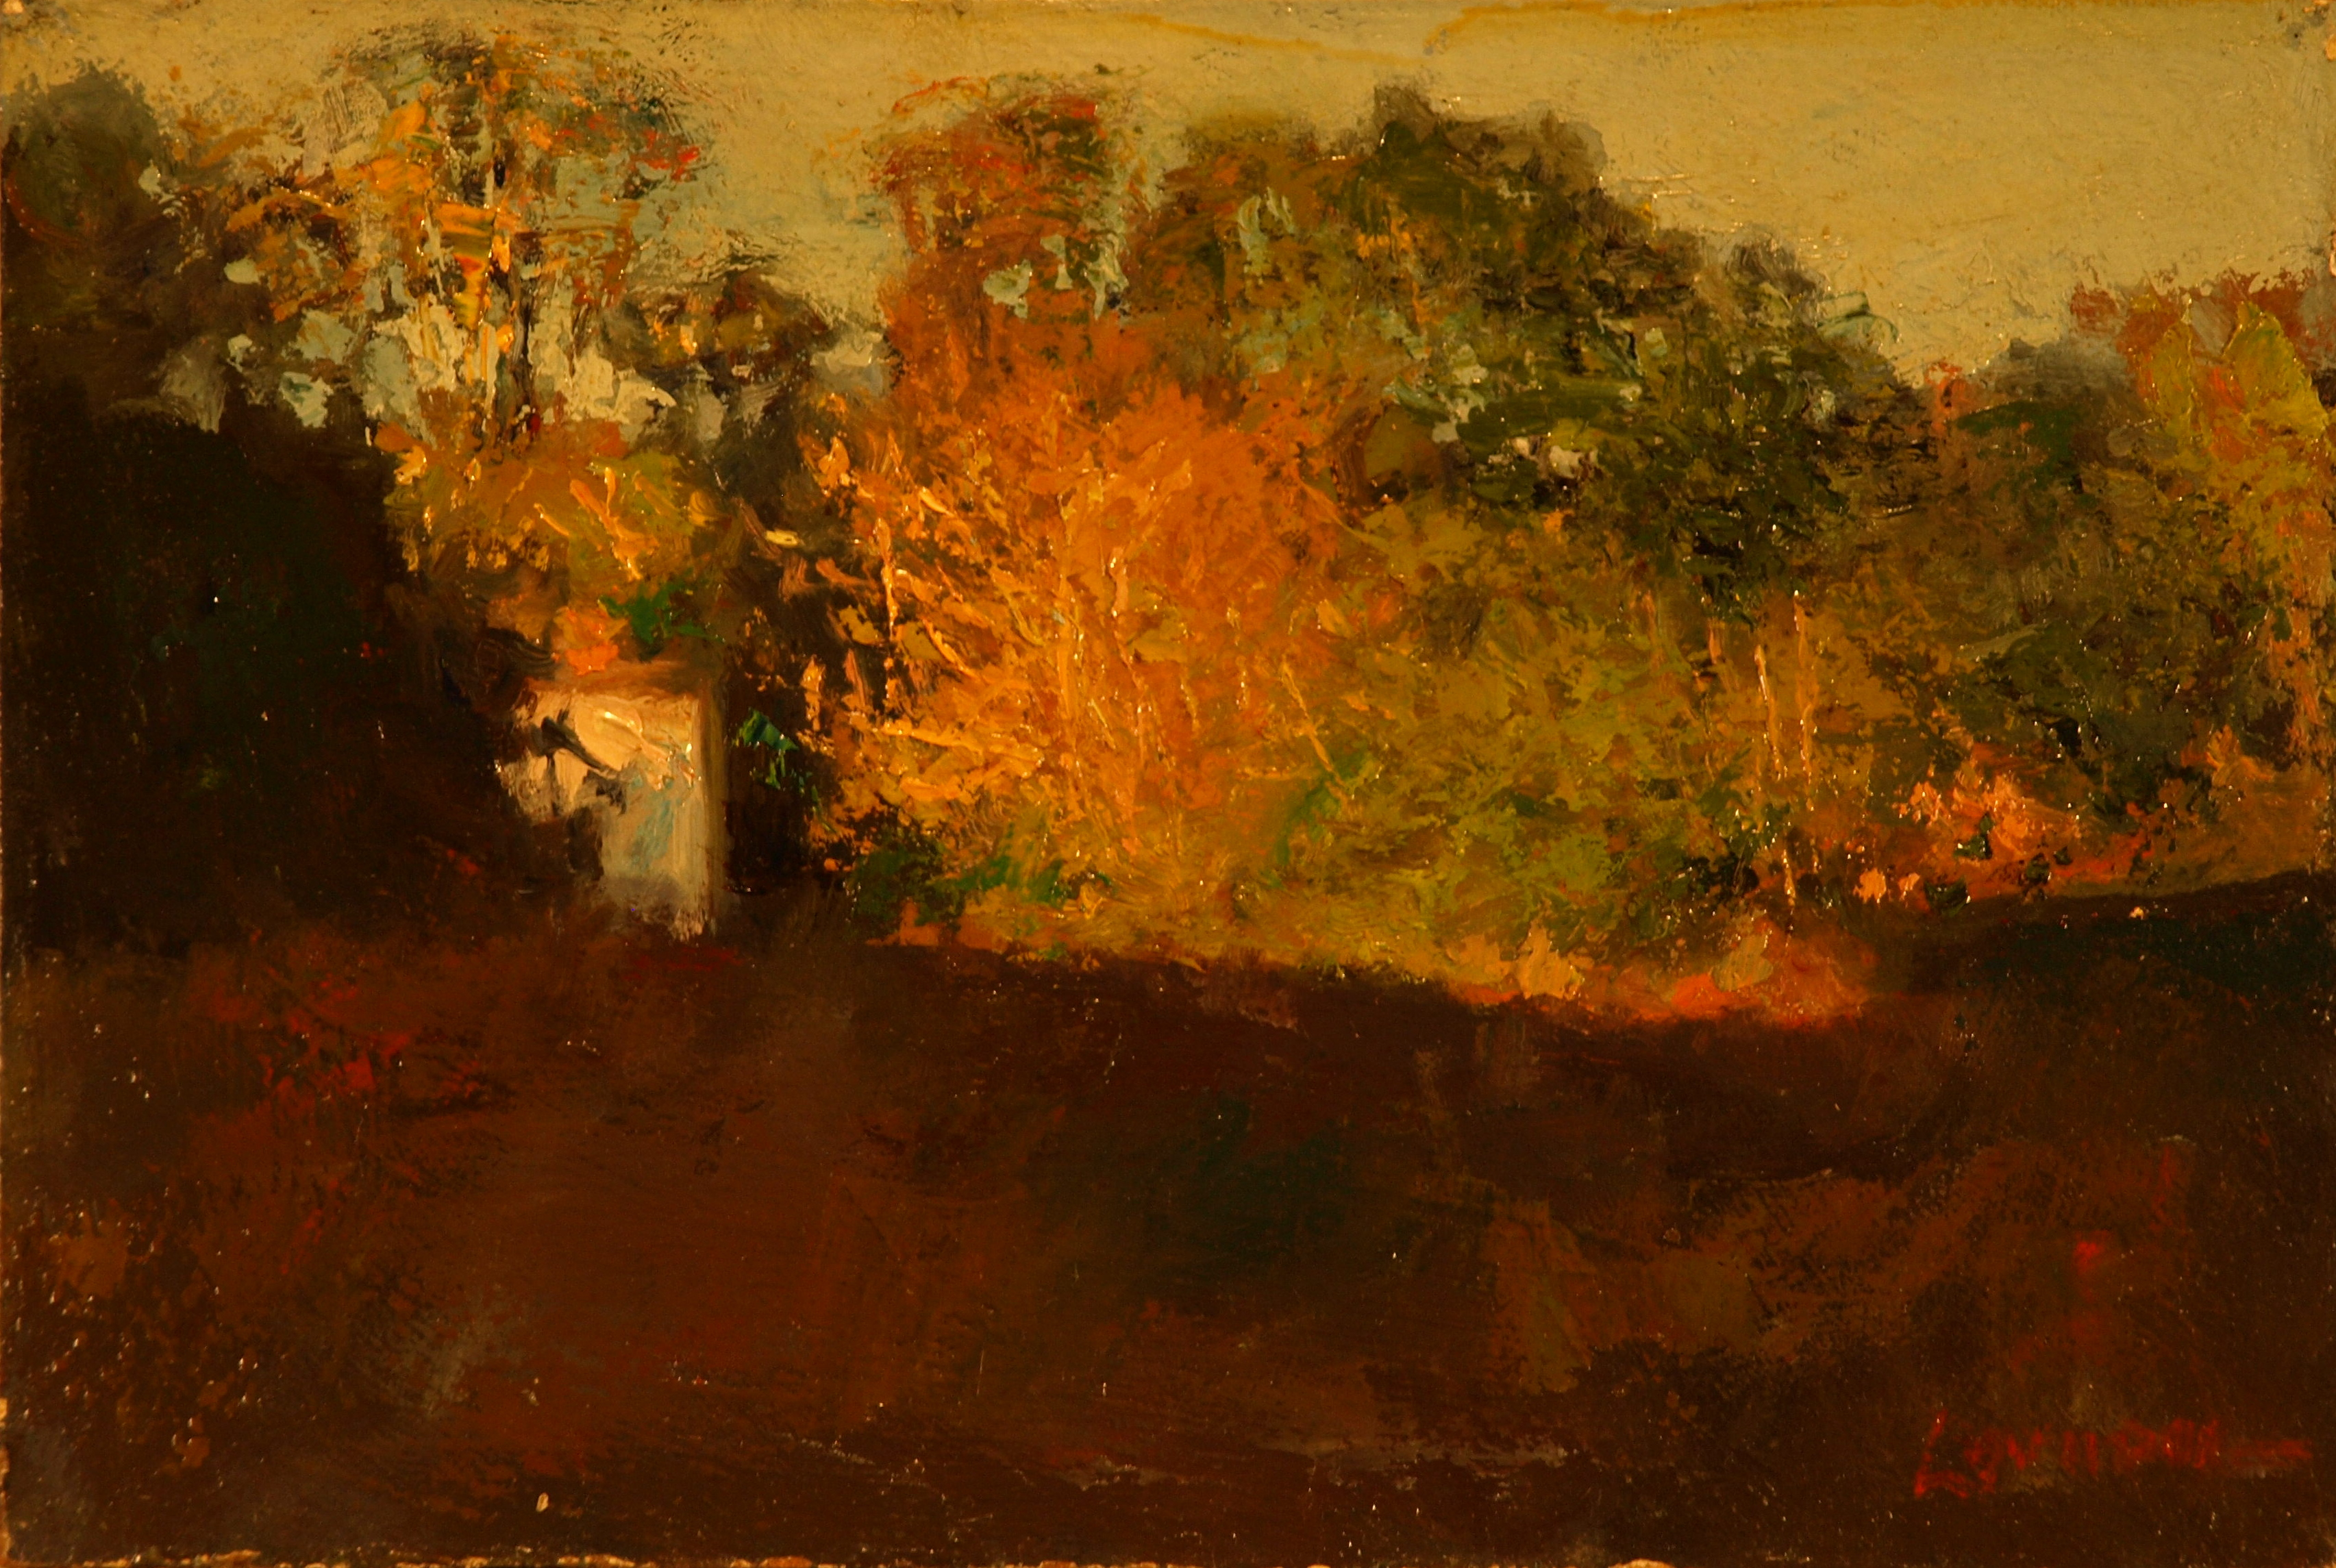 House in Autumn Sunset, Oil on Panel, 8 x 12 Inches, by Bernard Lennon, $400